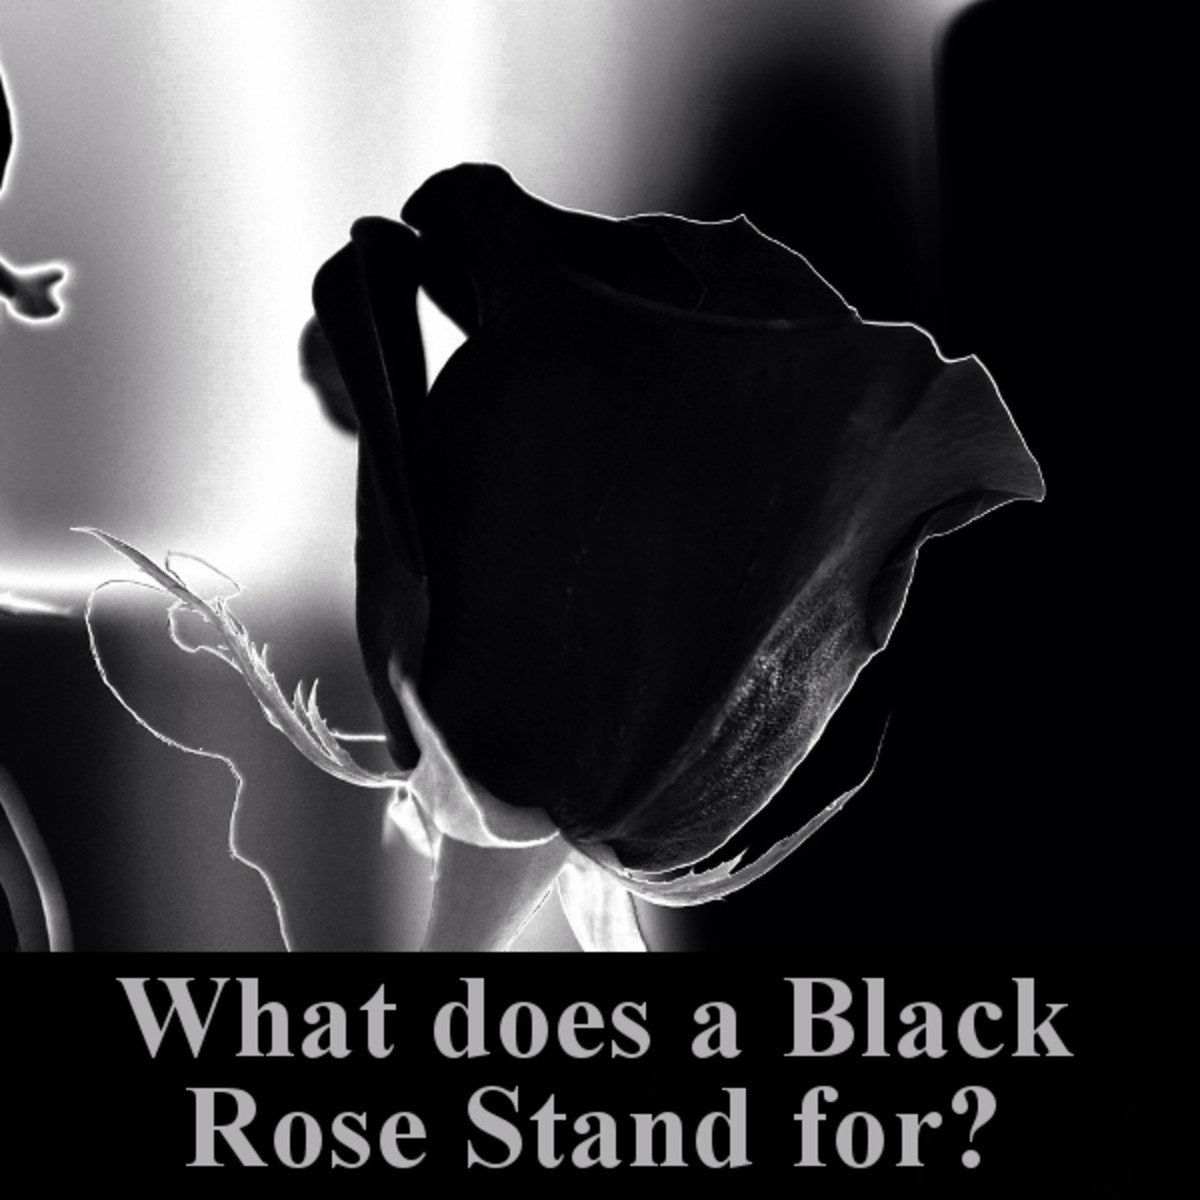 What does a black rose stand for?